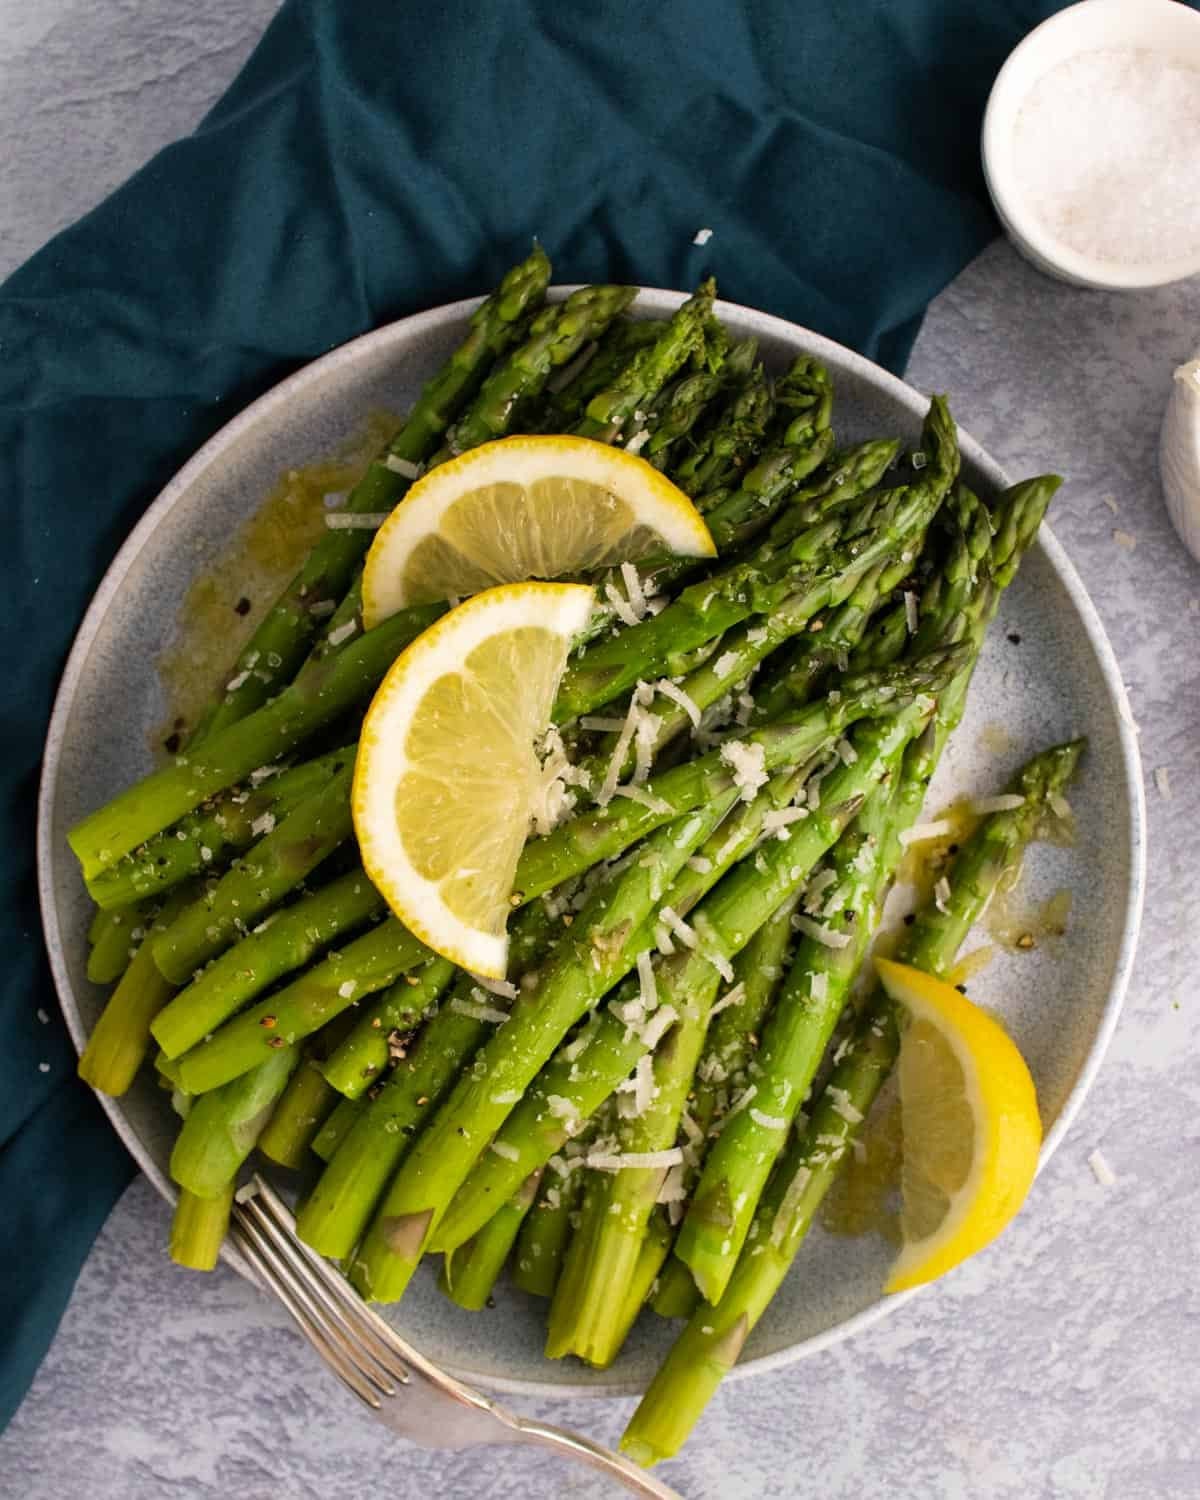 A plate of asparagus cooked in the instant pot